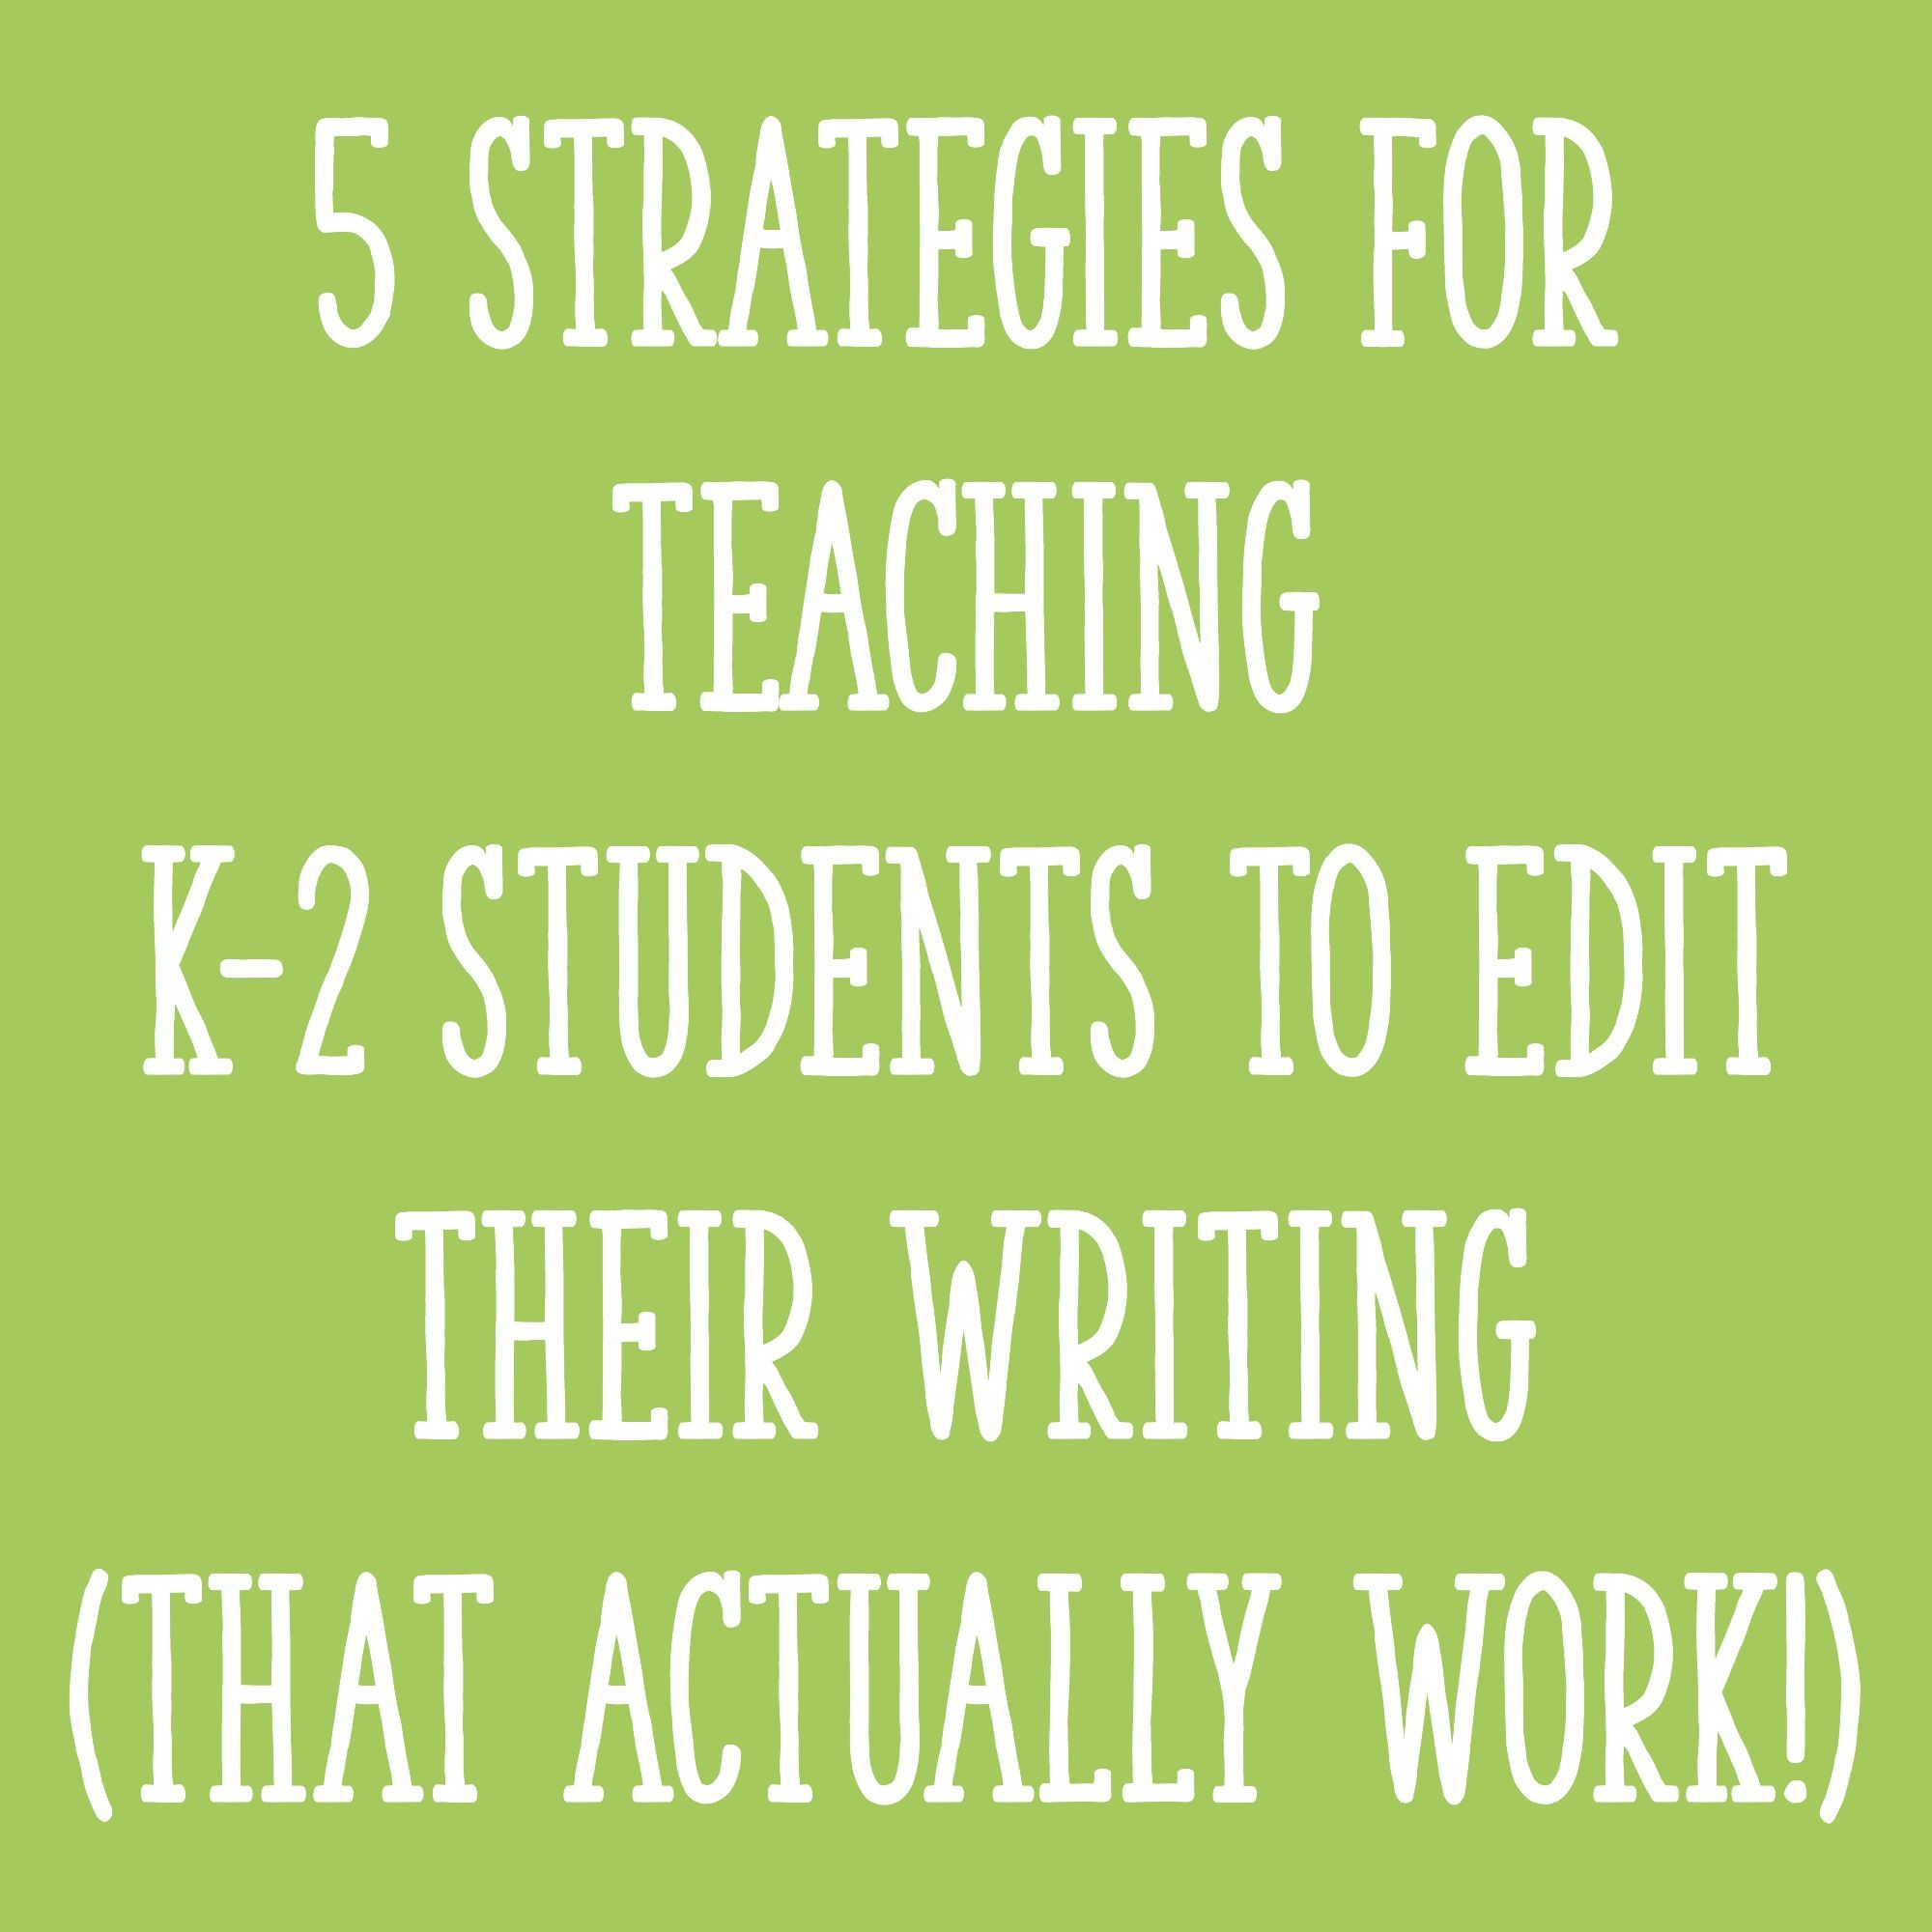 5 Effective Strategies For Teaching K 2 Students To Edit Their Writing